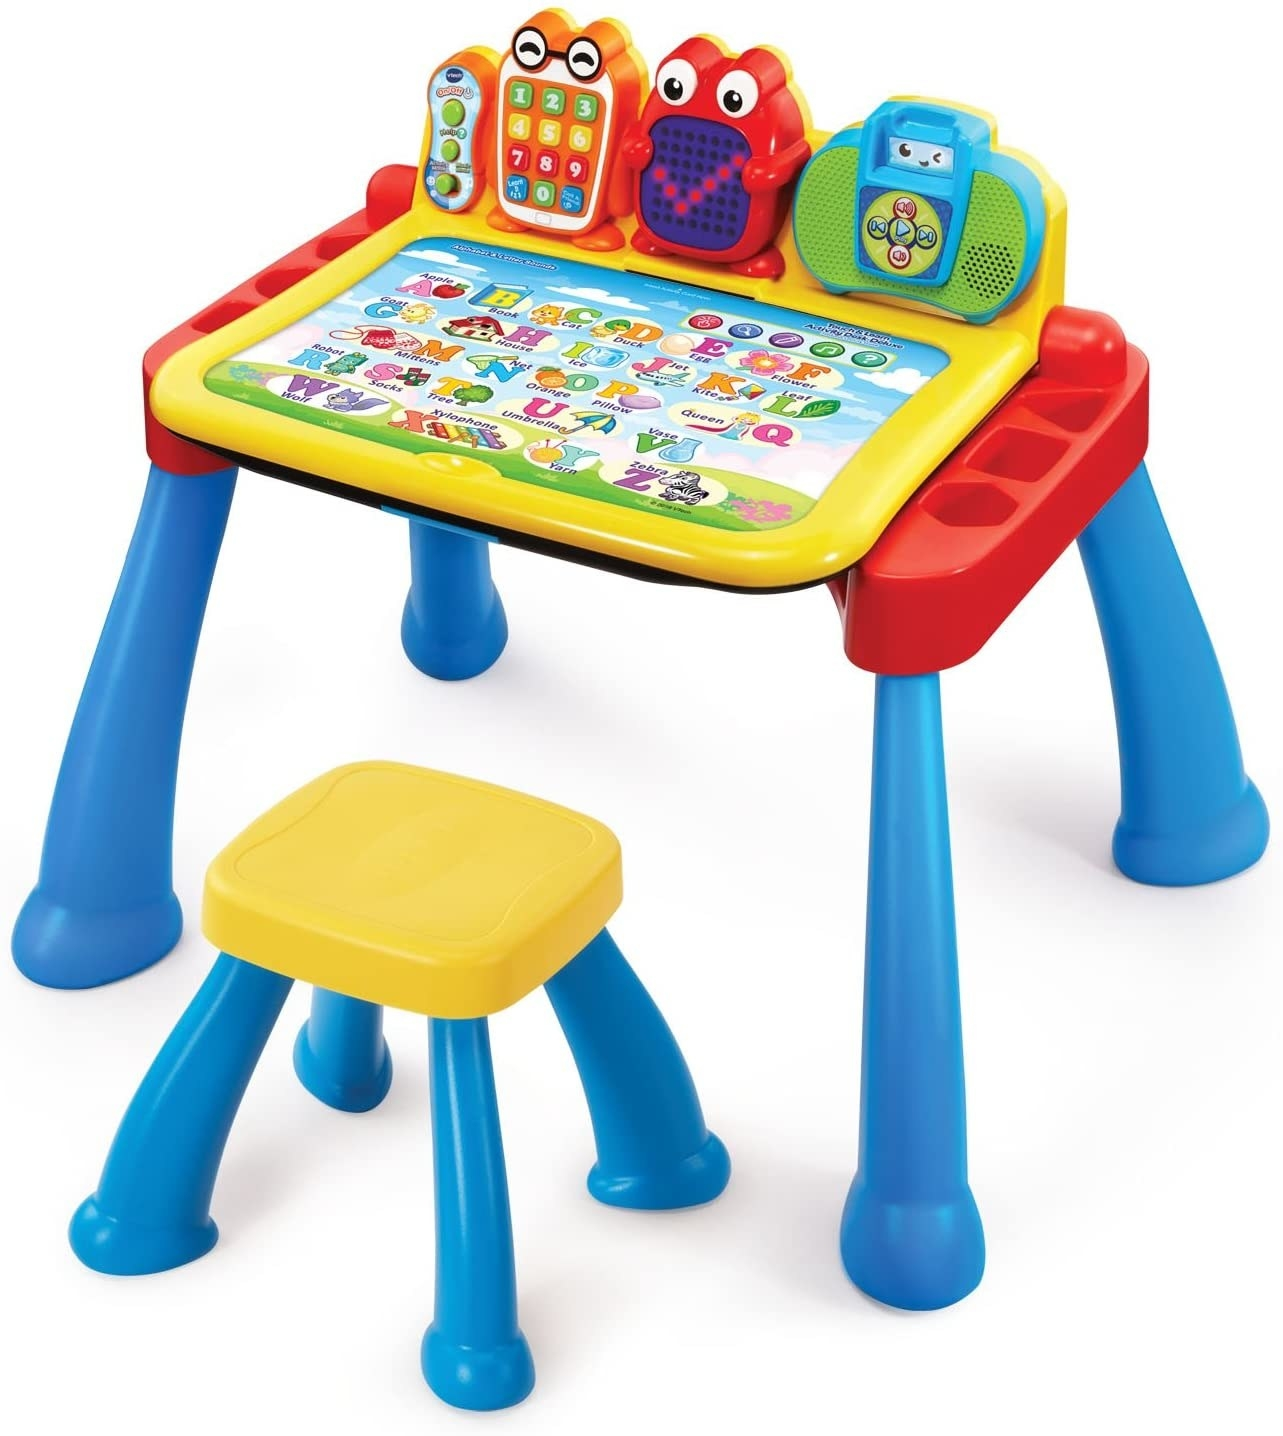 A plastic  red, blue, and yellow chair and activity desk with numbers and fun characters